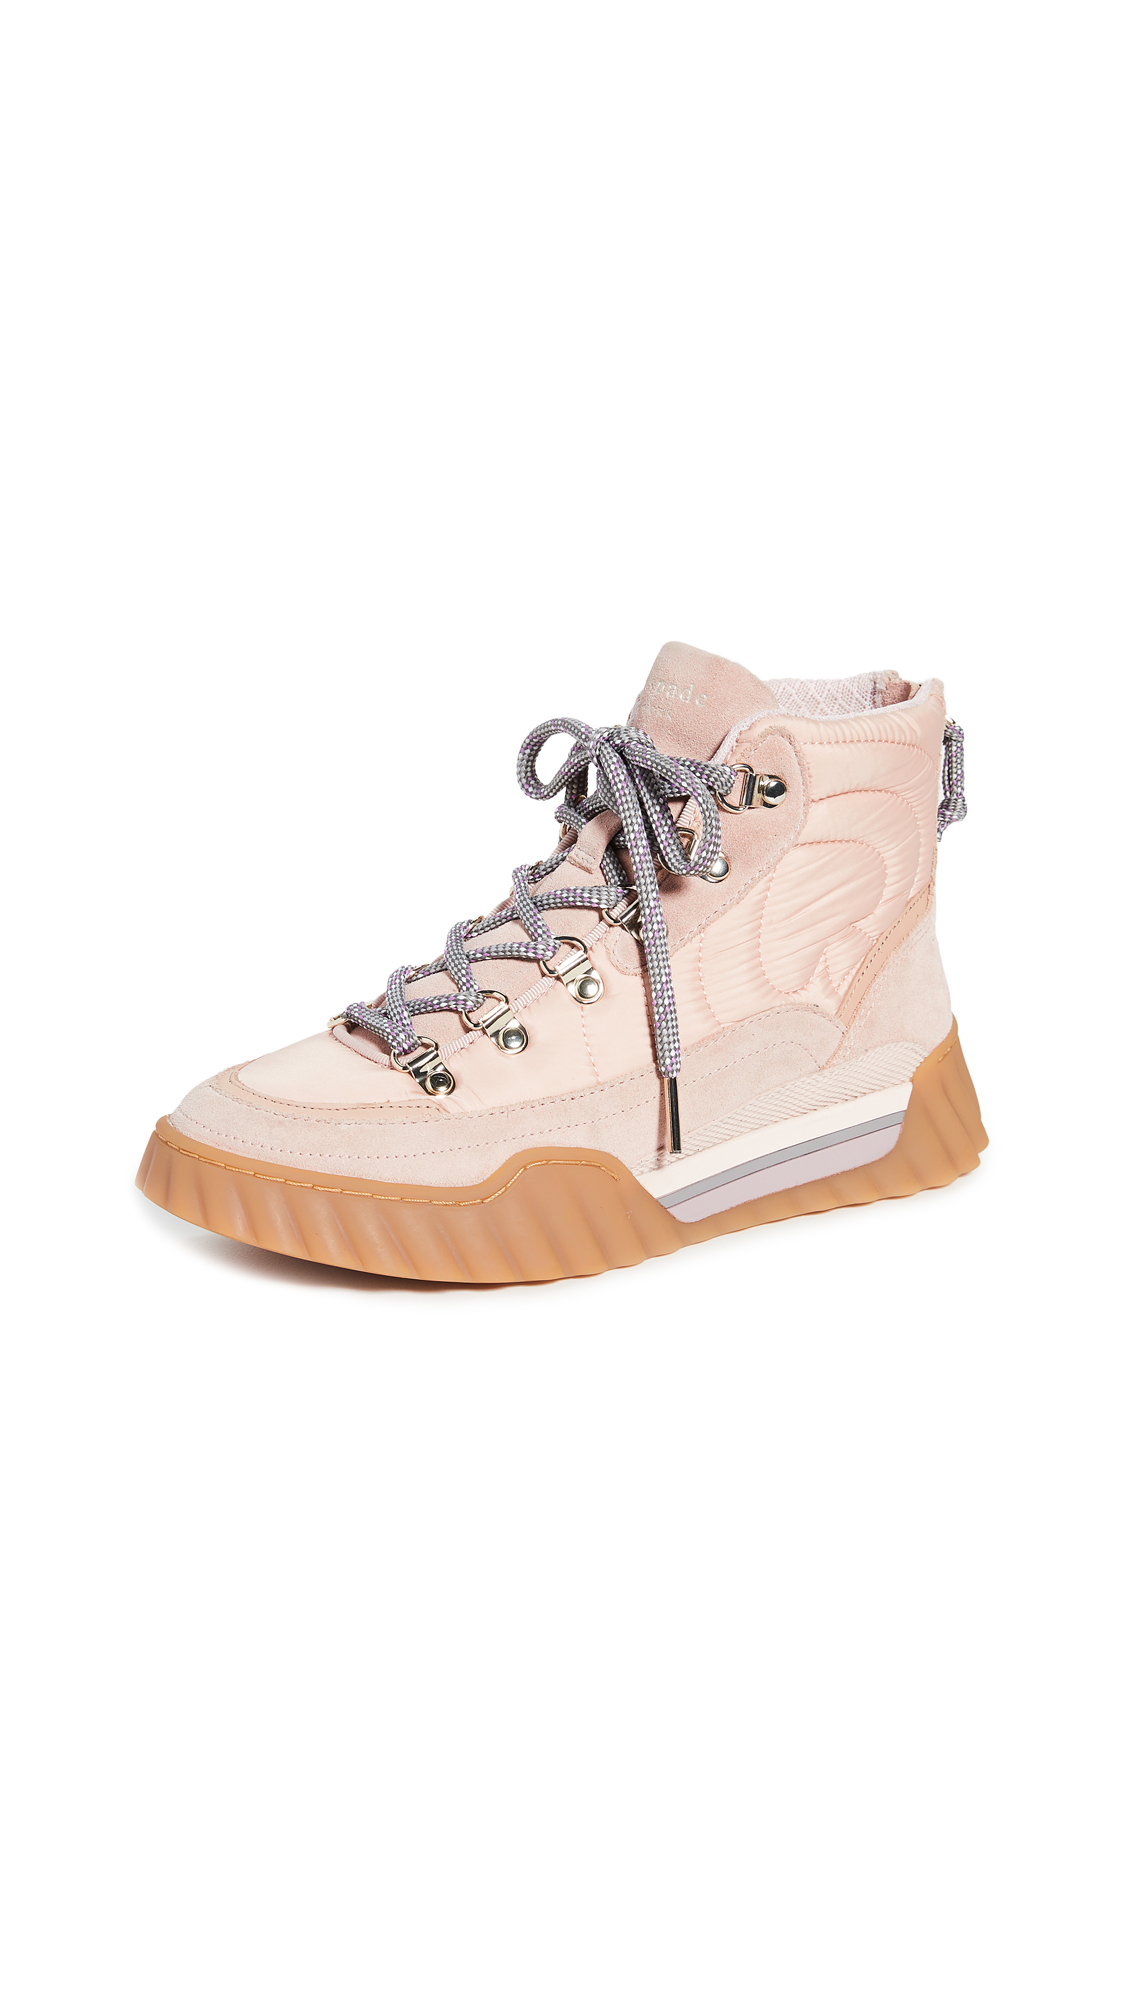 Kate Spade Wynter Hiker Boots In Pale Vellum